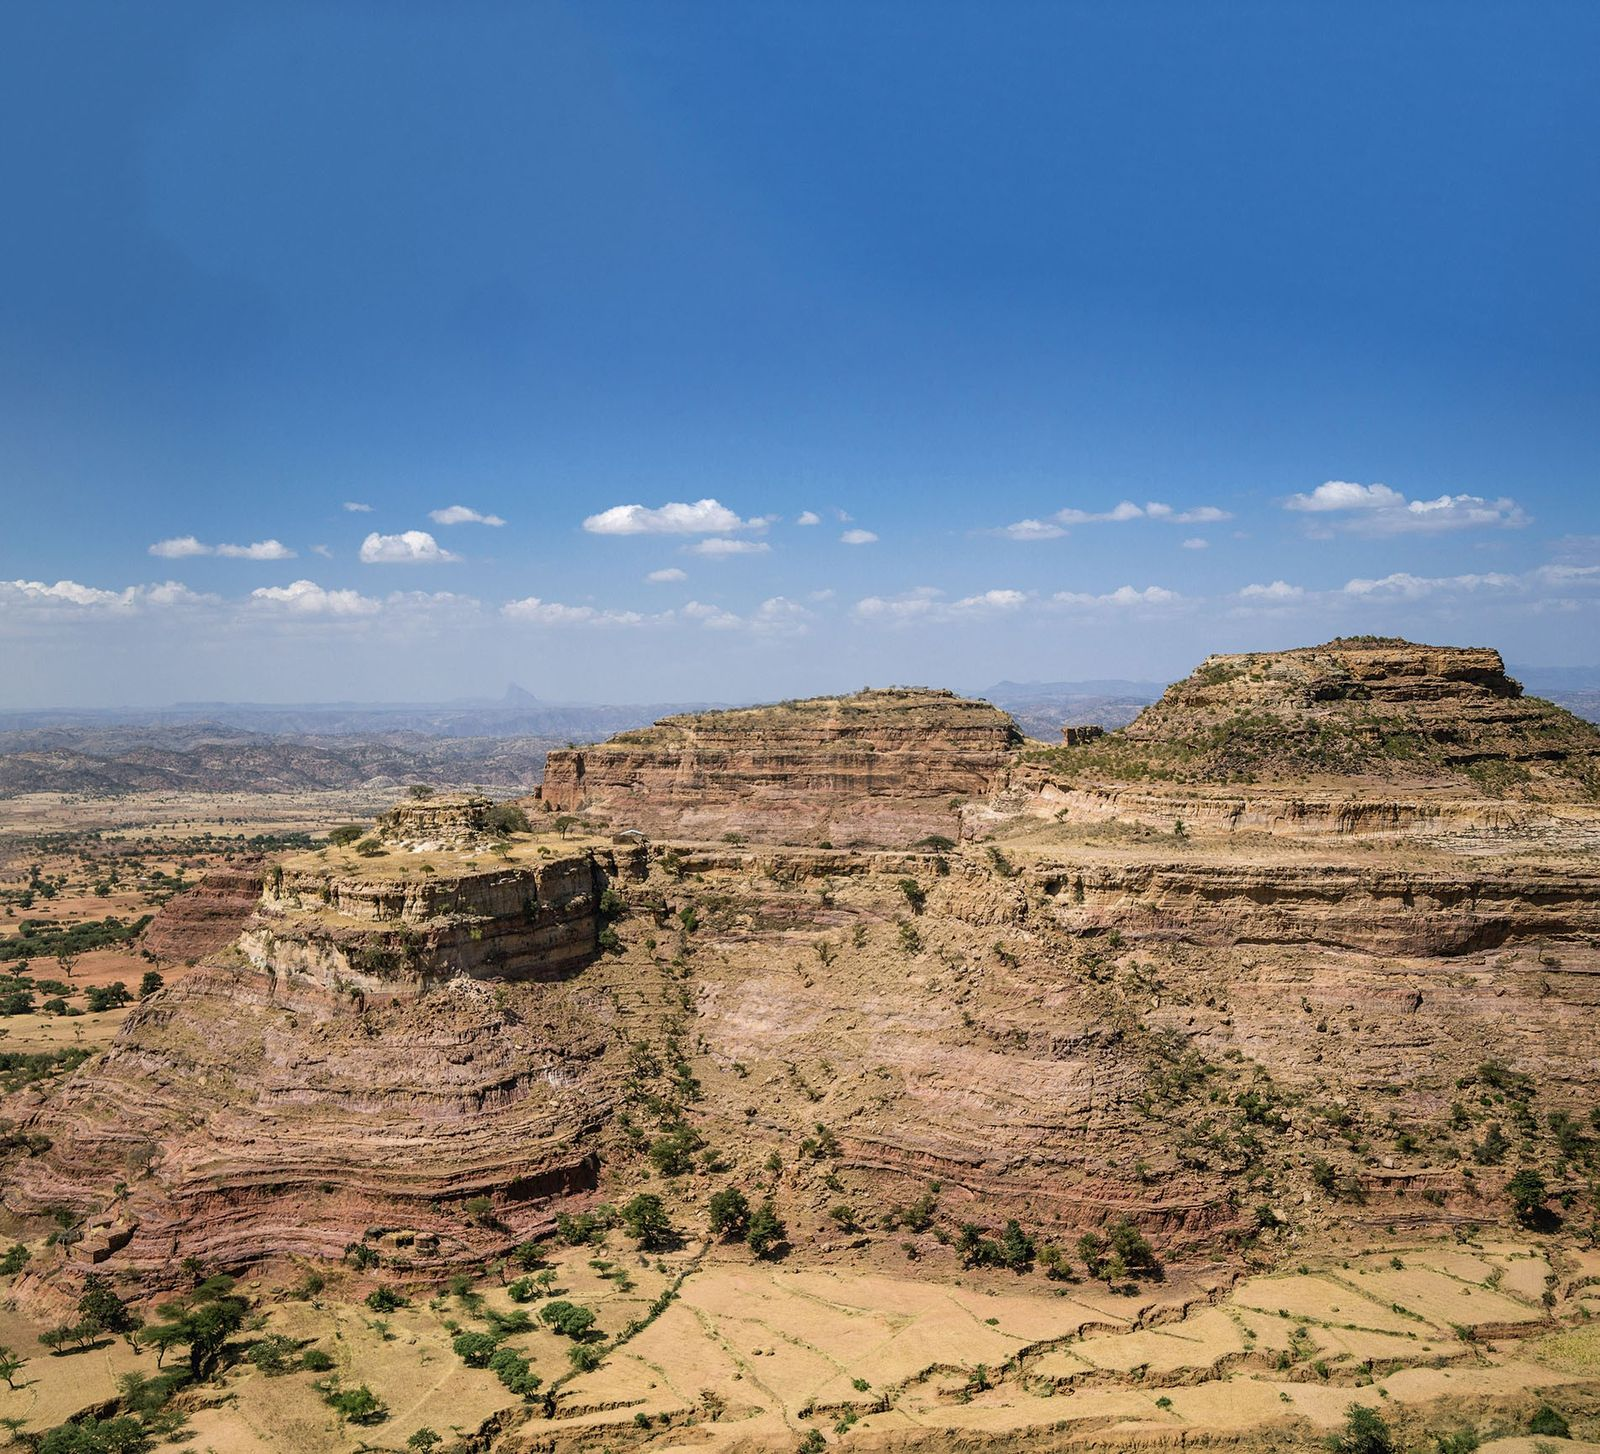 Sandstone mountains in Tigray region.